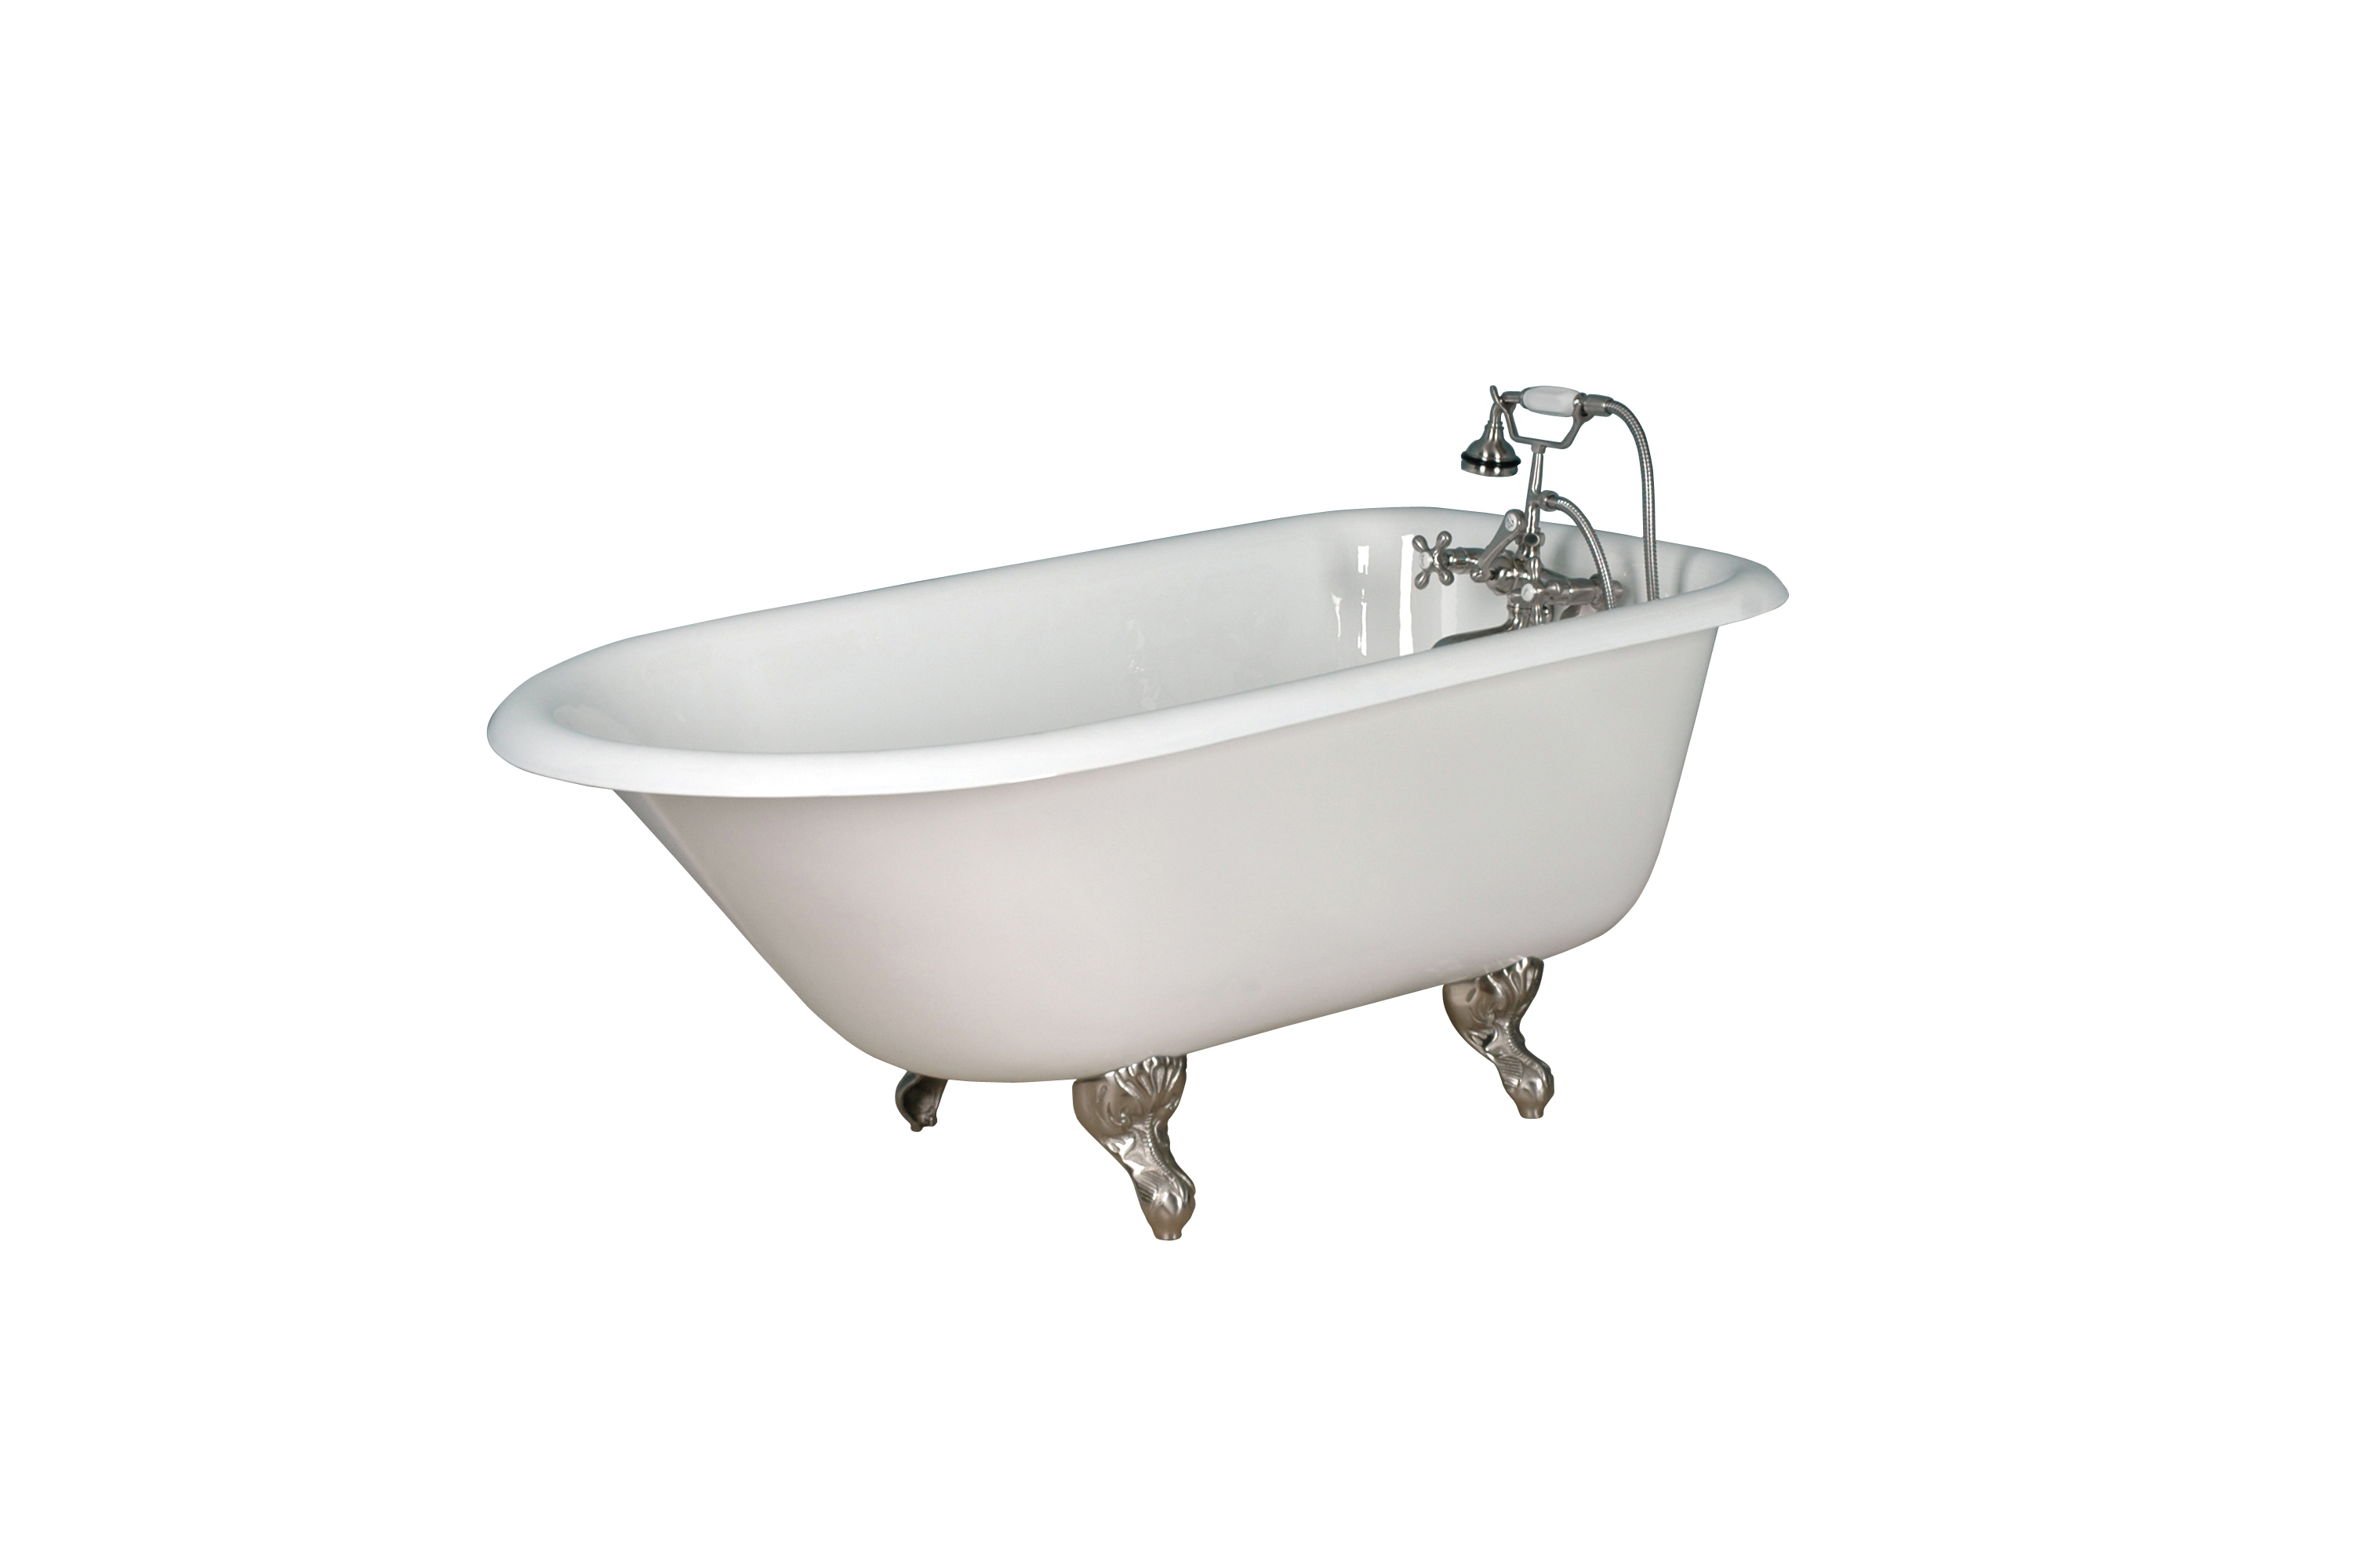 Http Www Exclusivehomebath Com Product Classic Roll Tup Cast Iron Bathtub